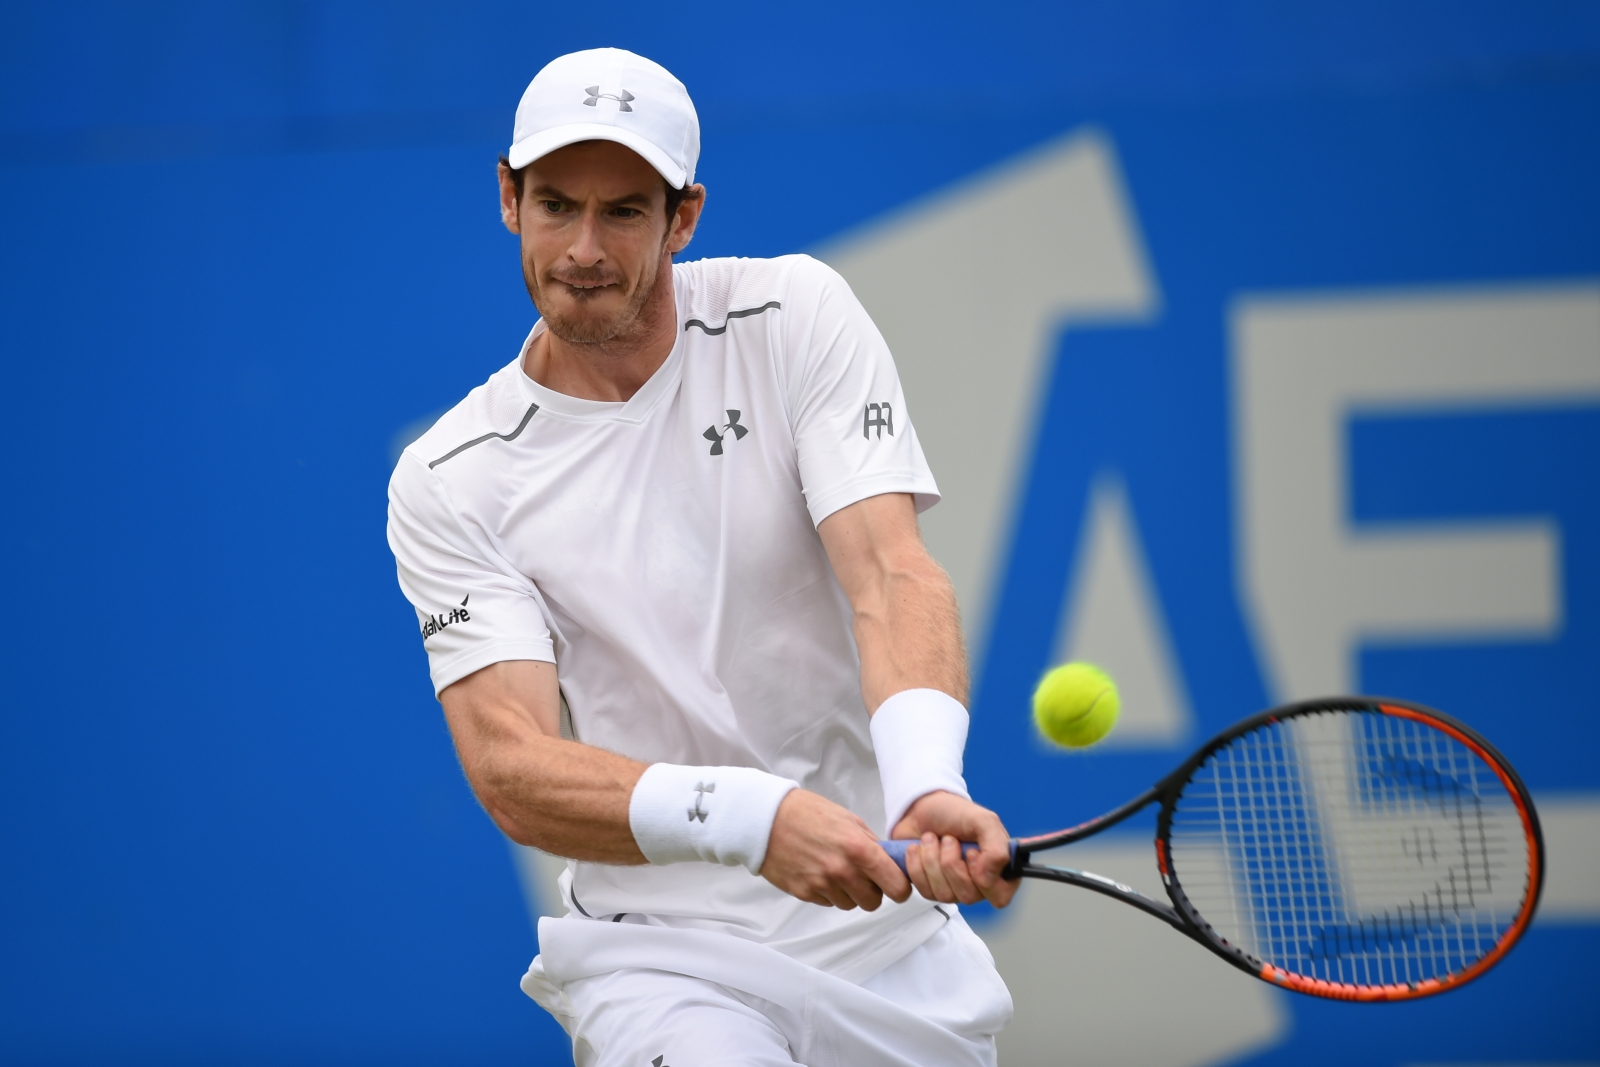 Murray eases into Queen's Club quarterfinals